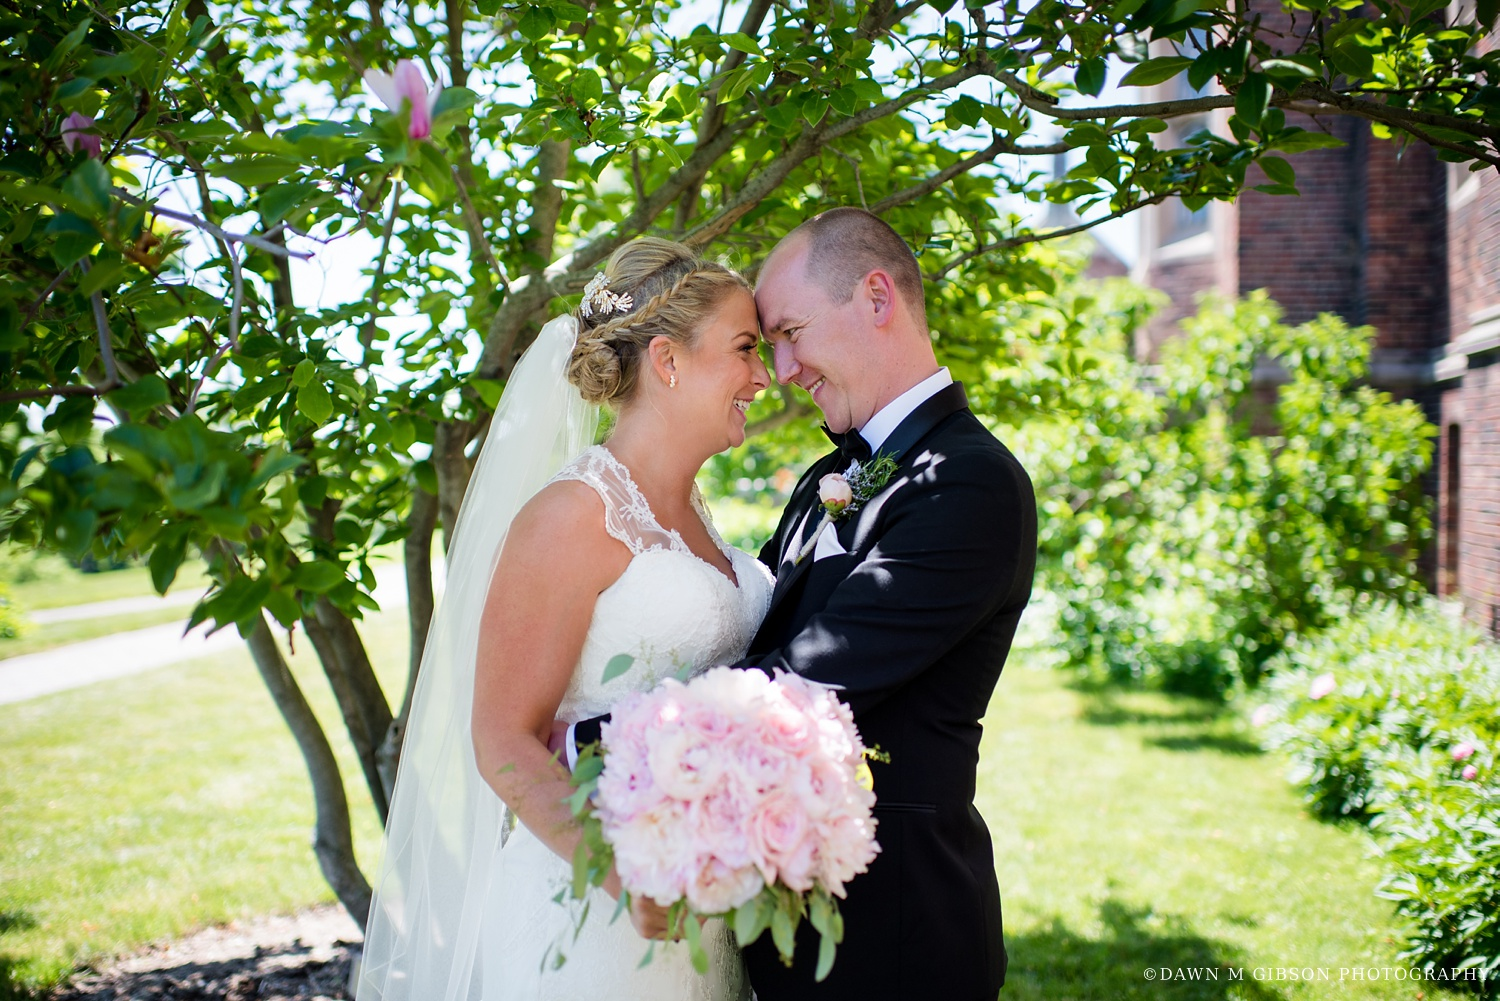 buffalo_wny_rochester_wedding_photographer_dawnmgibsonphotography_strathallan_colgate_rochester_divinity_rochester_wedding_venues_0018.jpg